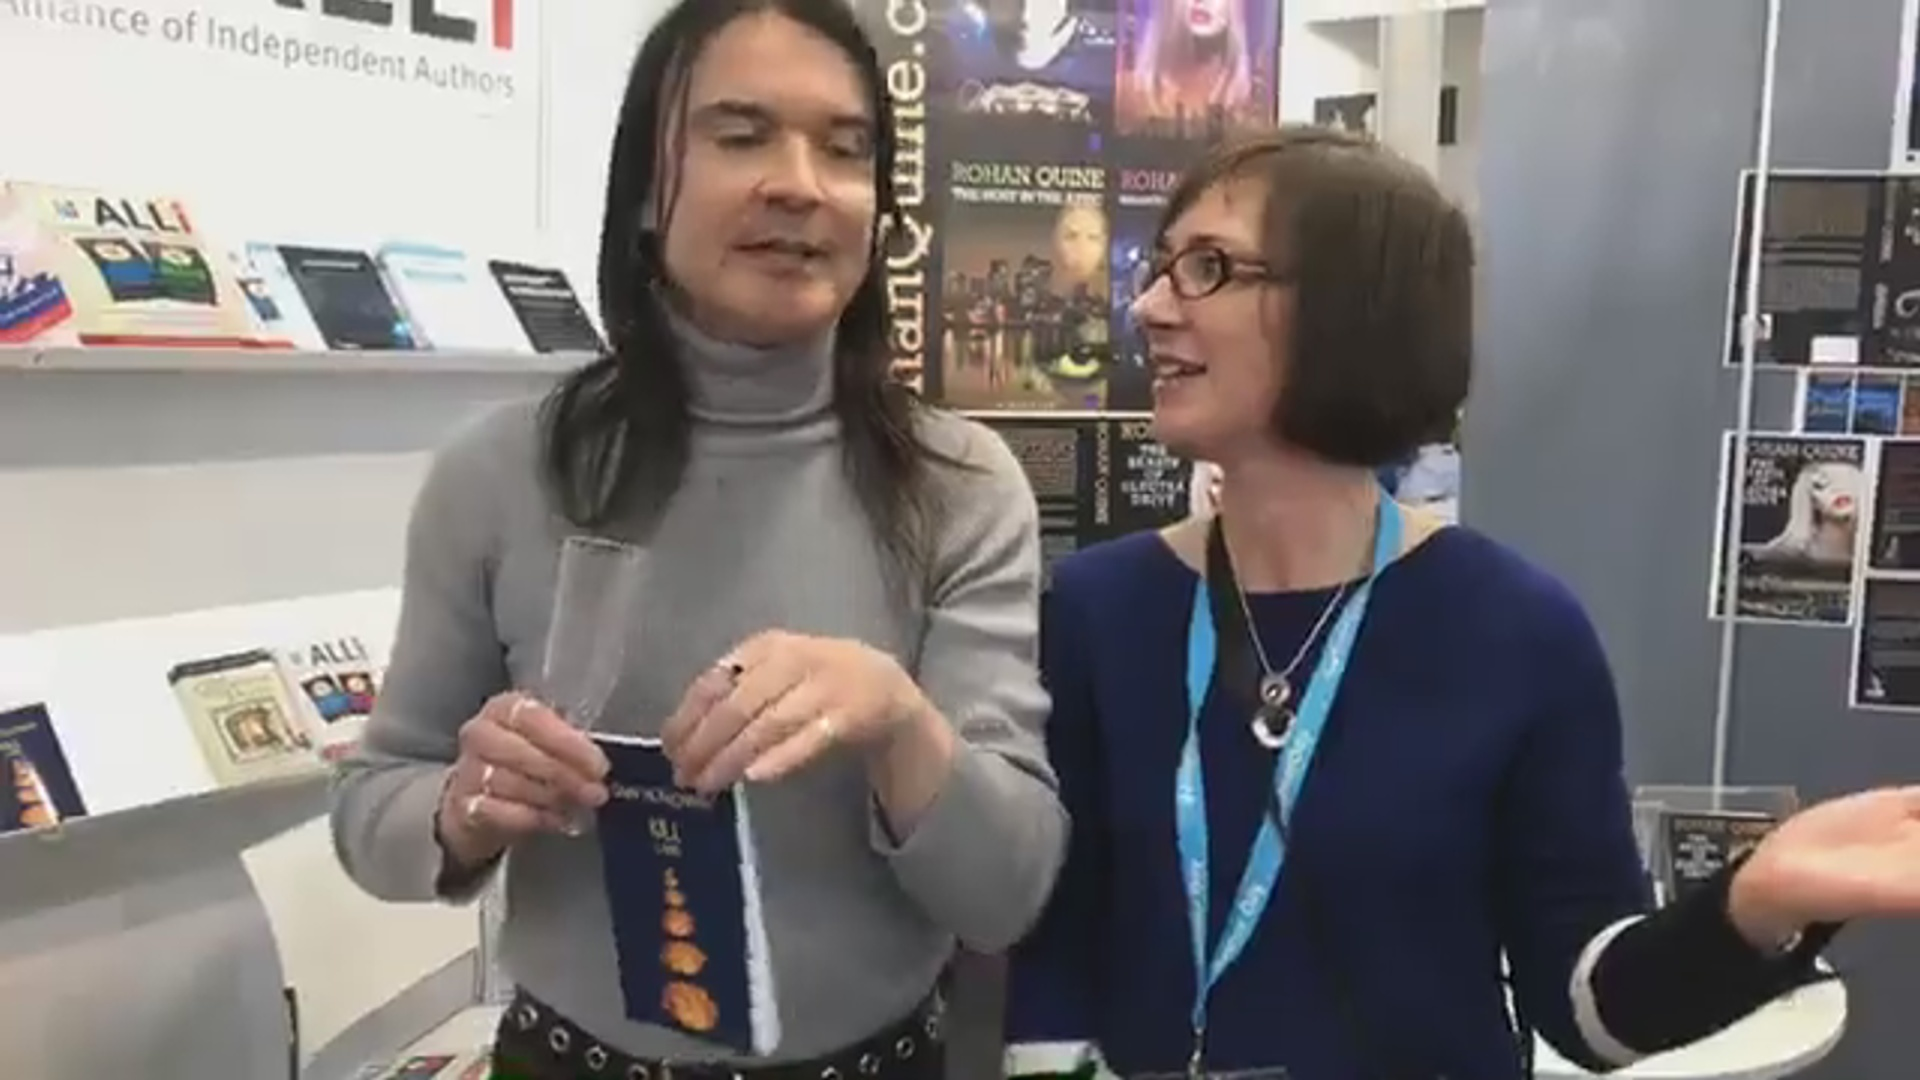 LBF18 launch of Rohan Quine's 'The Beasts of Electra Drive', Dan Holloway's 'Kill Land' & Jane Davis's 'Smash all the Windows' - 19